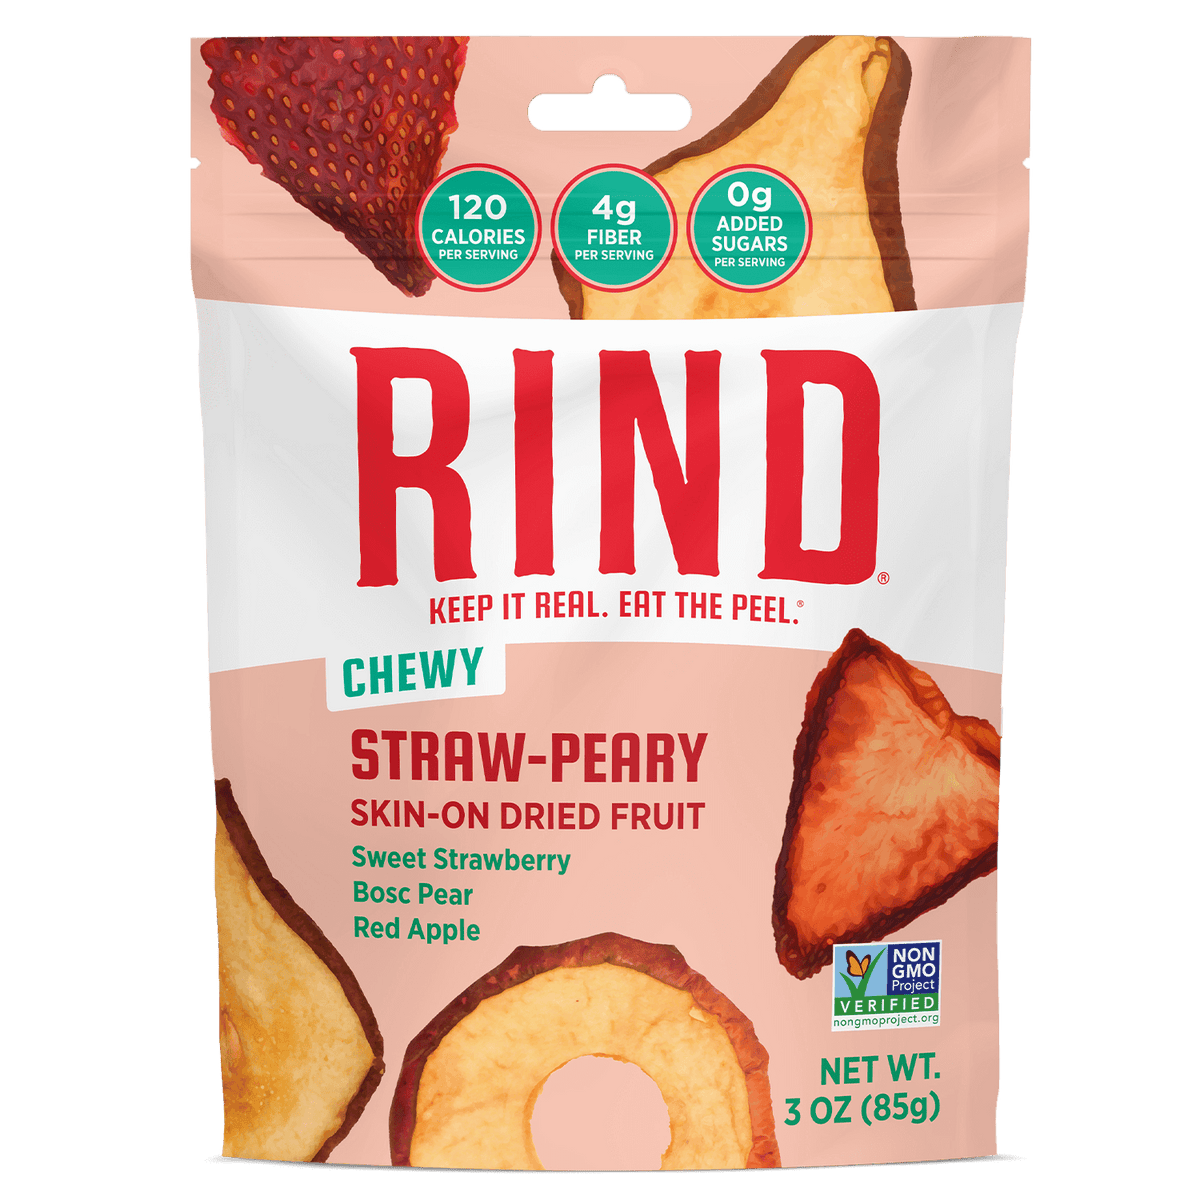 Rind Straw-Peary Skin-On Dried Fruit